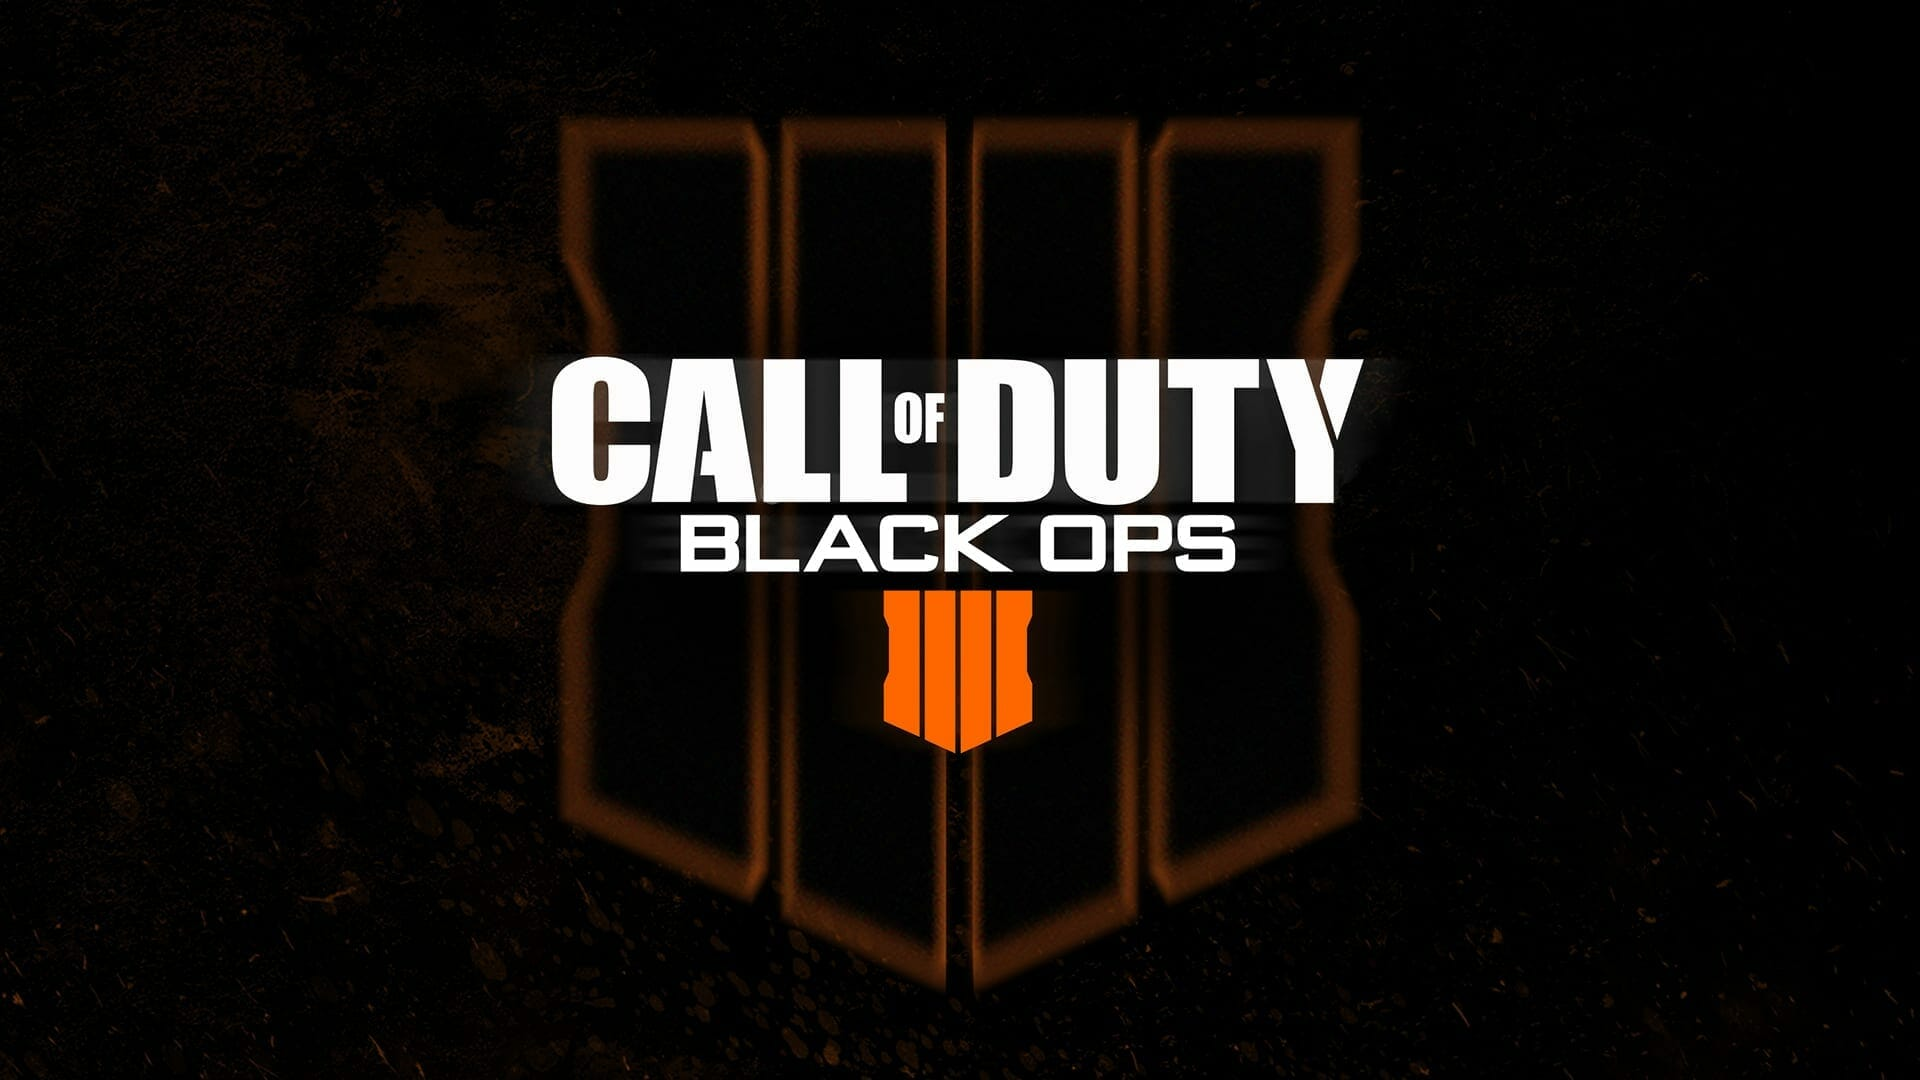 Play Call of Duty: BO4 Blackout For Free This Entire Month, New Map Call Of Duty Free Maps on